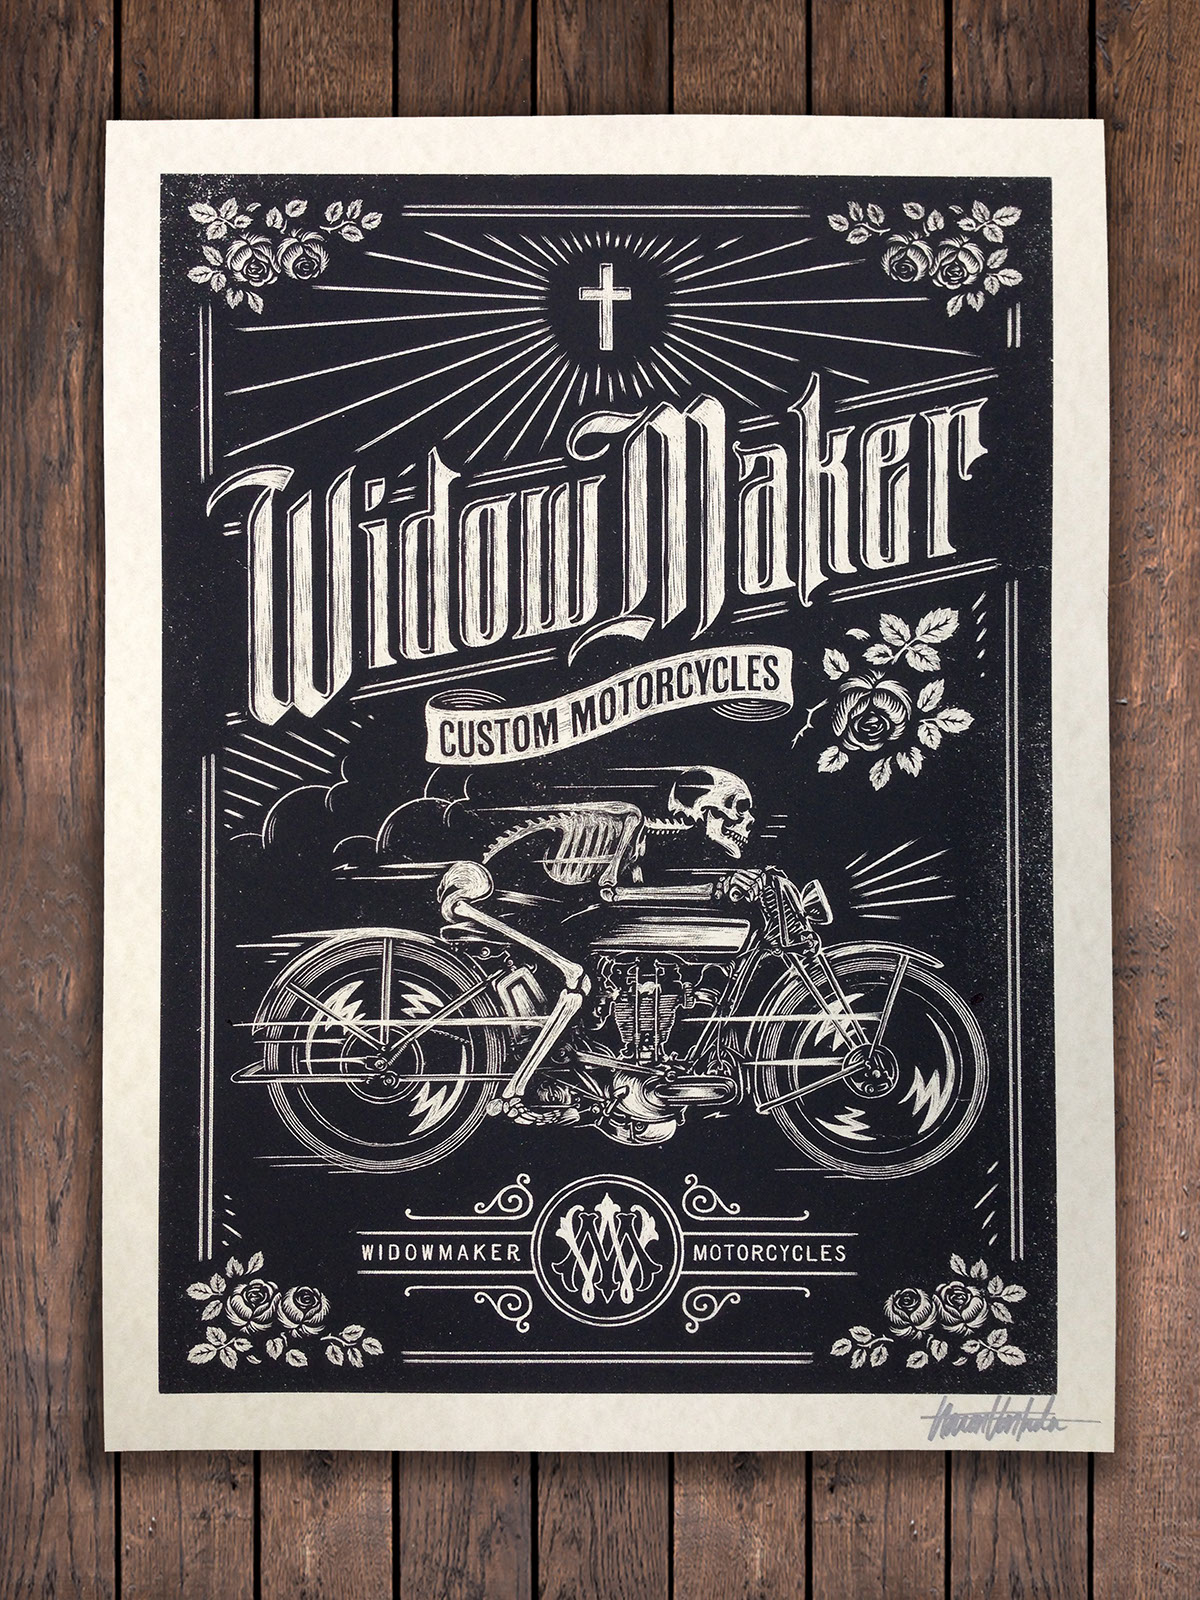 Poster design maker - Every Poster Ships In A High Clarity Polyethylene Film And Placed Inside Of A Durable Tube To Prevent Damage Email Aaron Vonfreter Yahoo Com If You Are